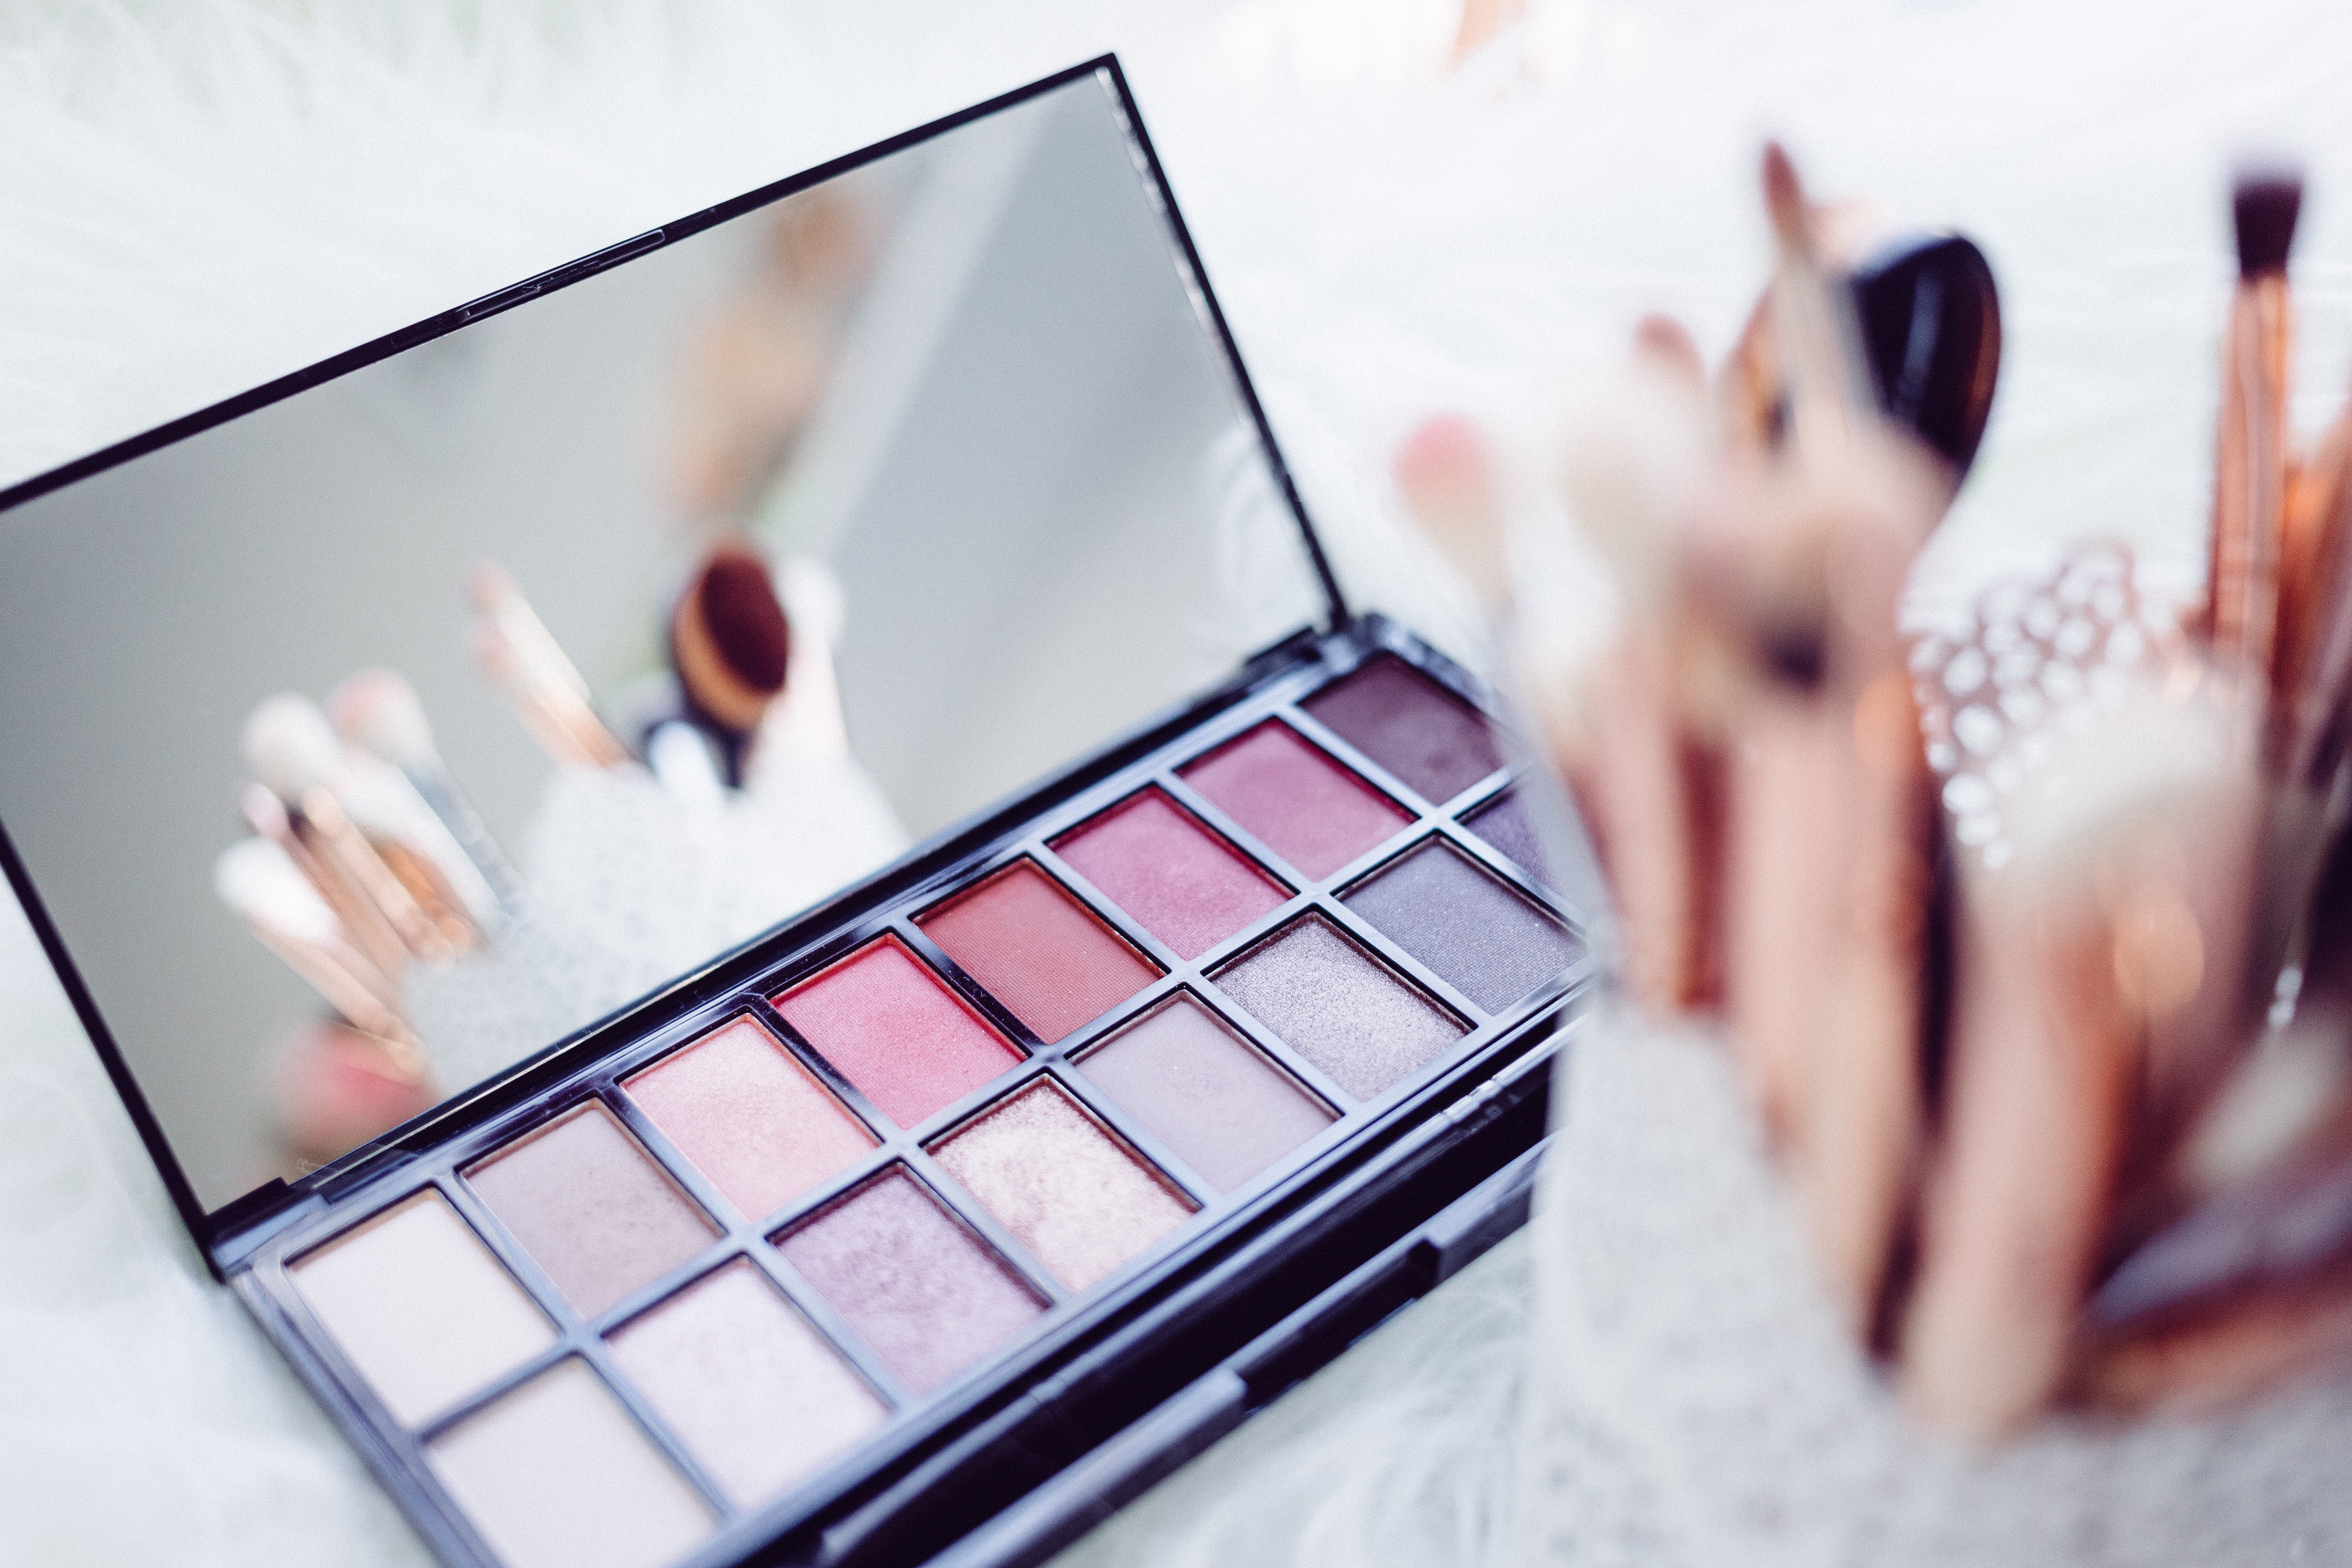 selective focus photography of eyeshadow palette